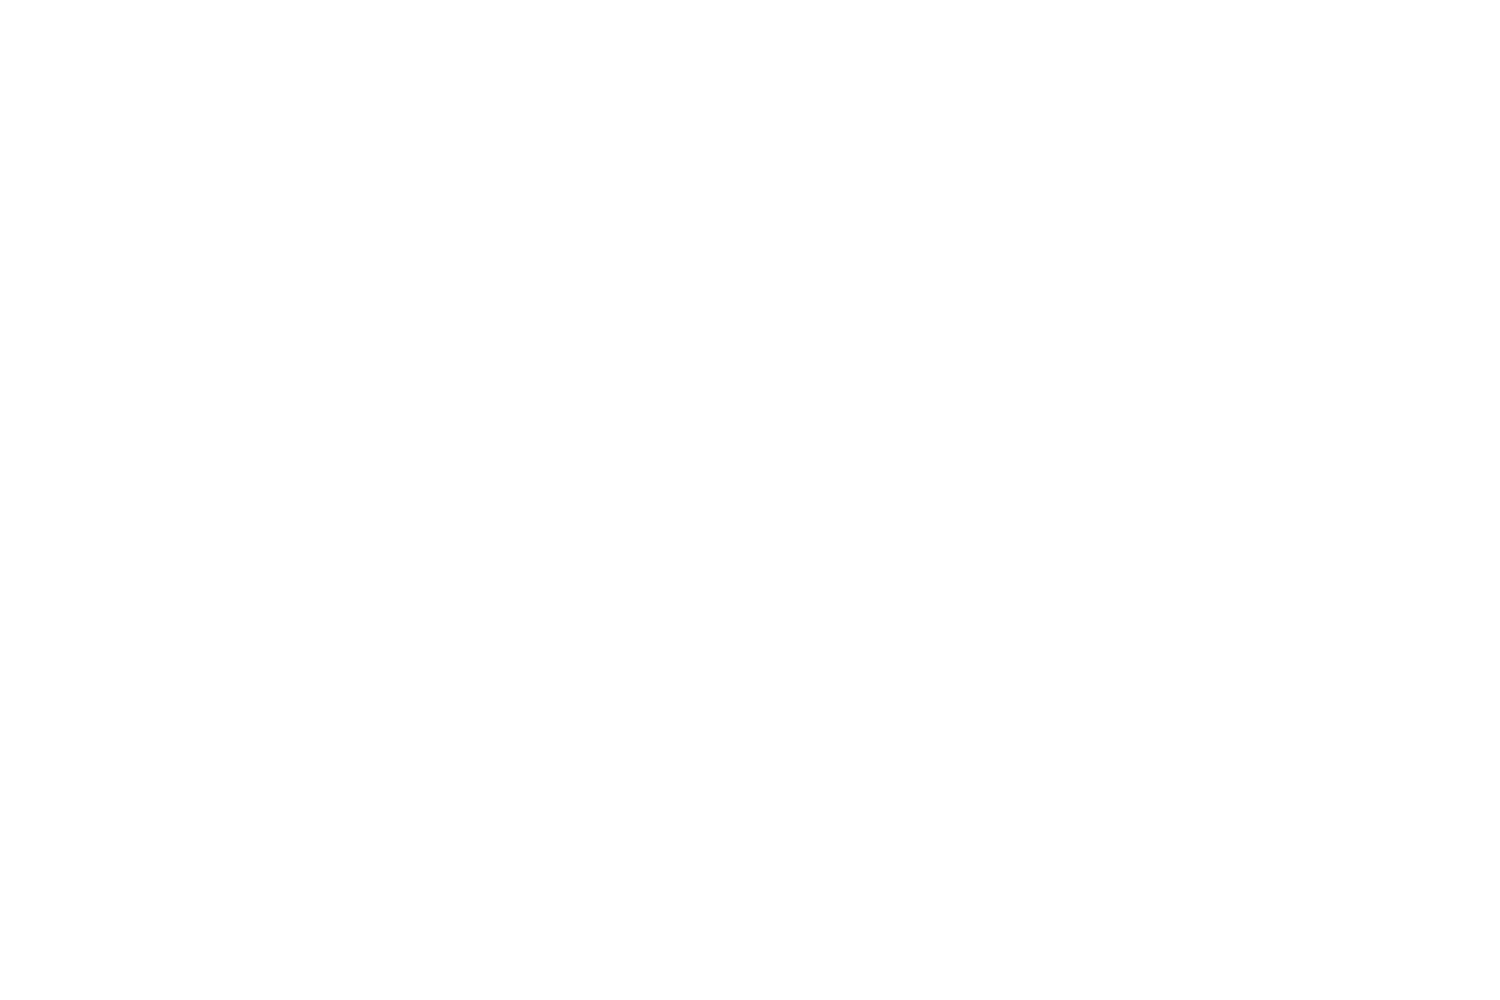 Amarillo Performing Arts Center